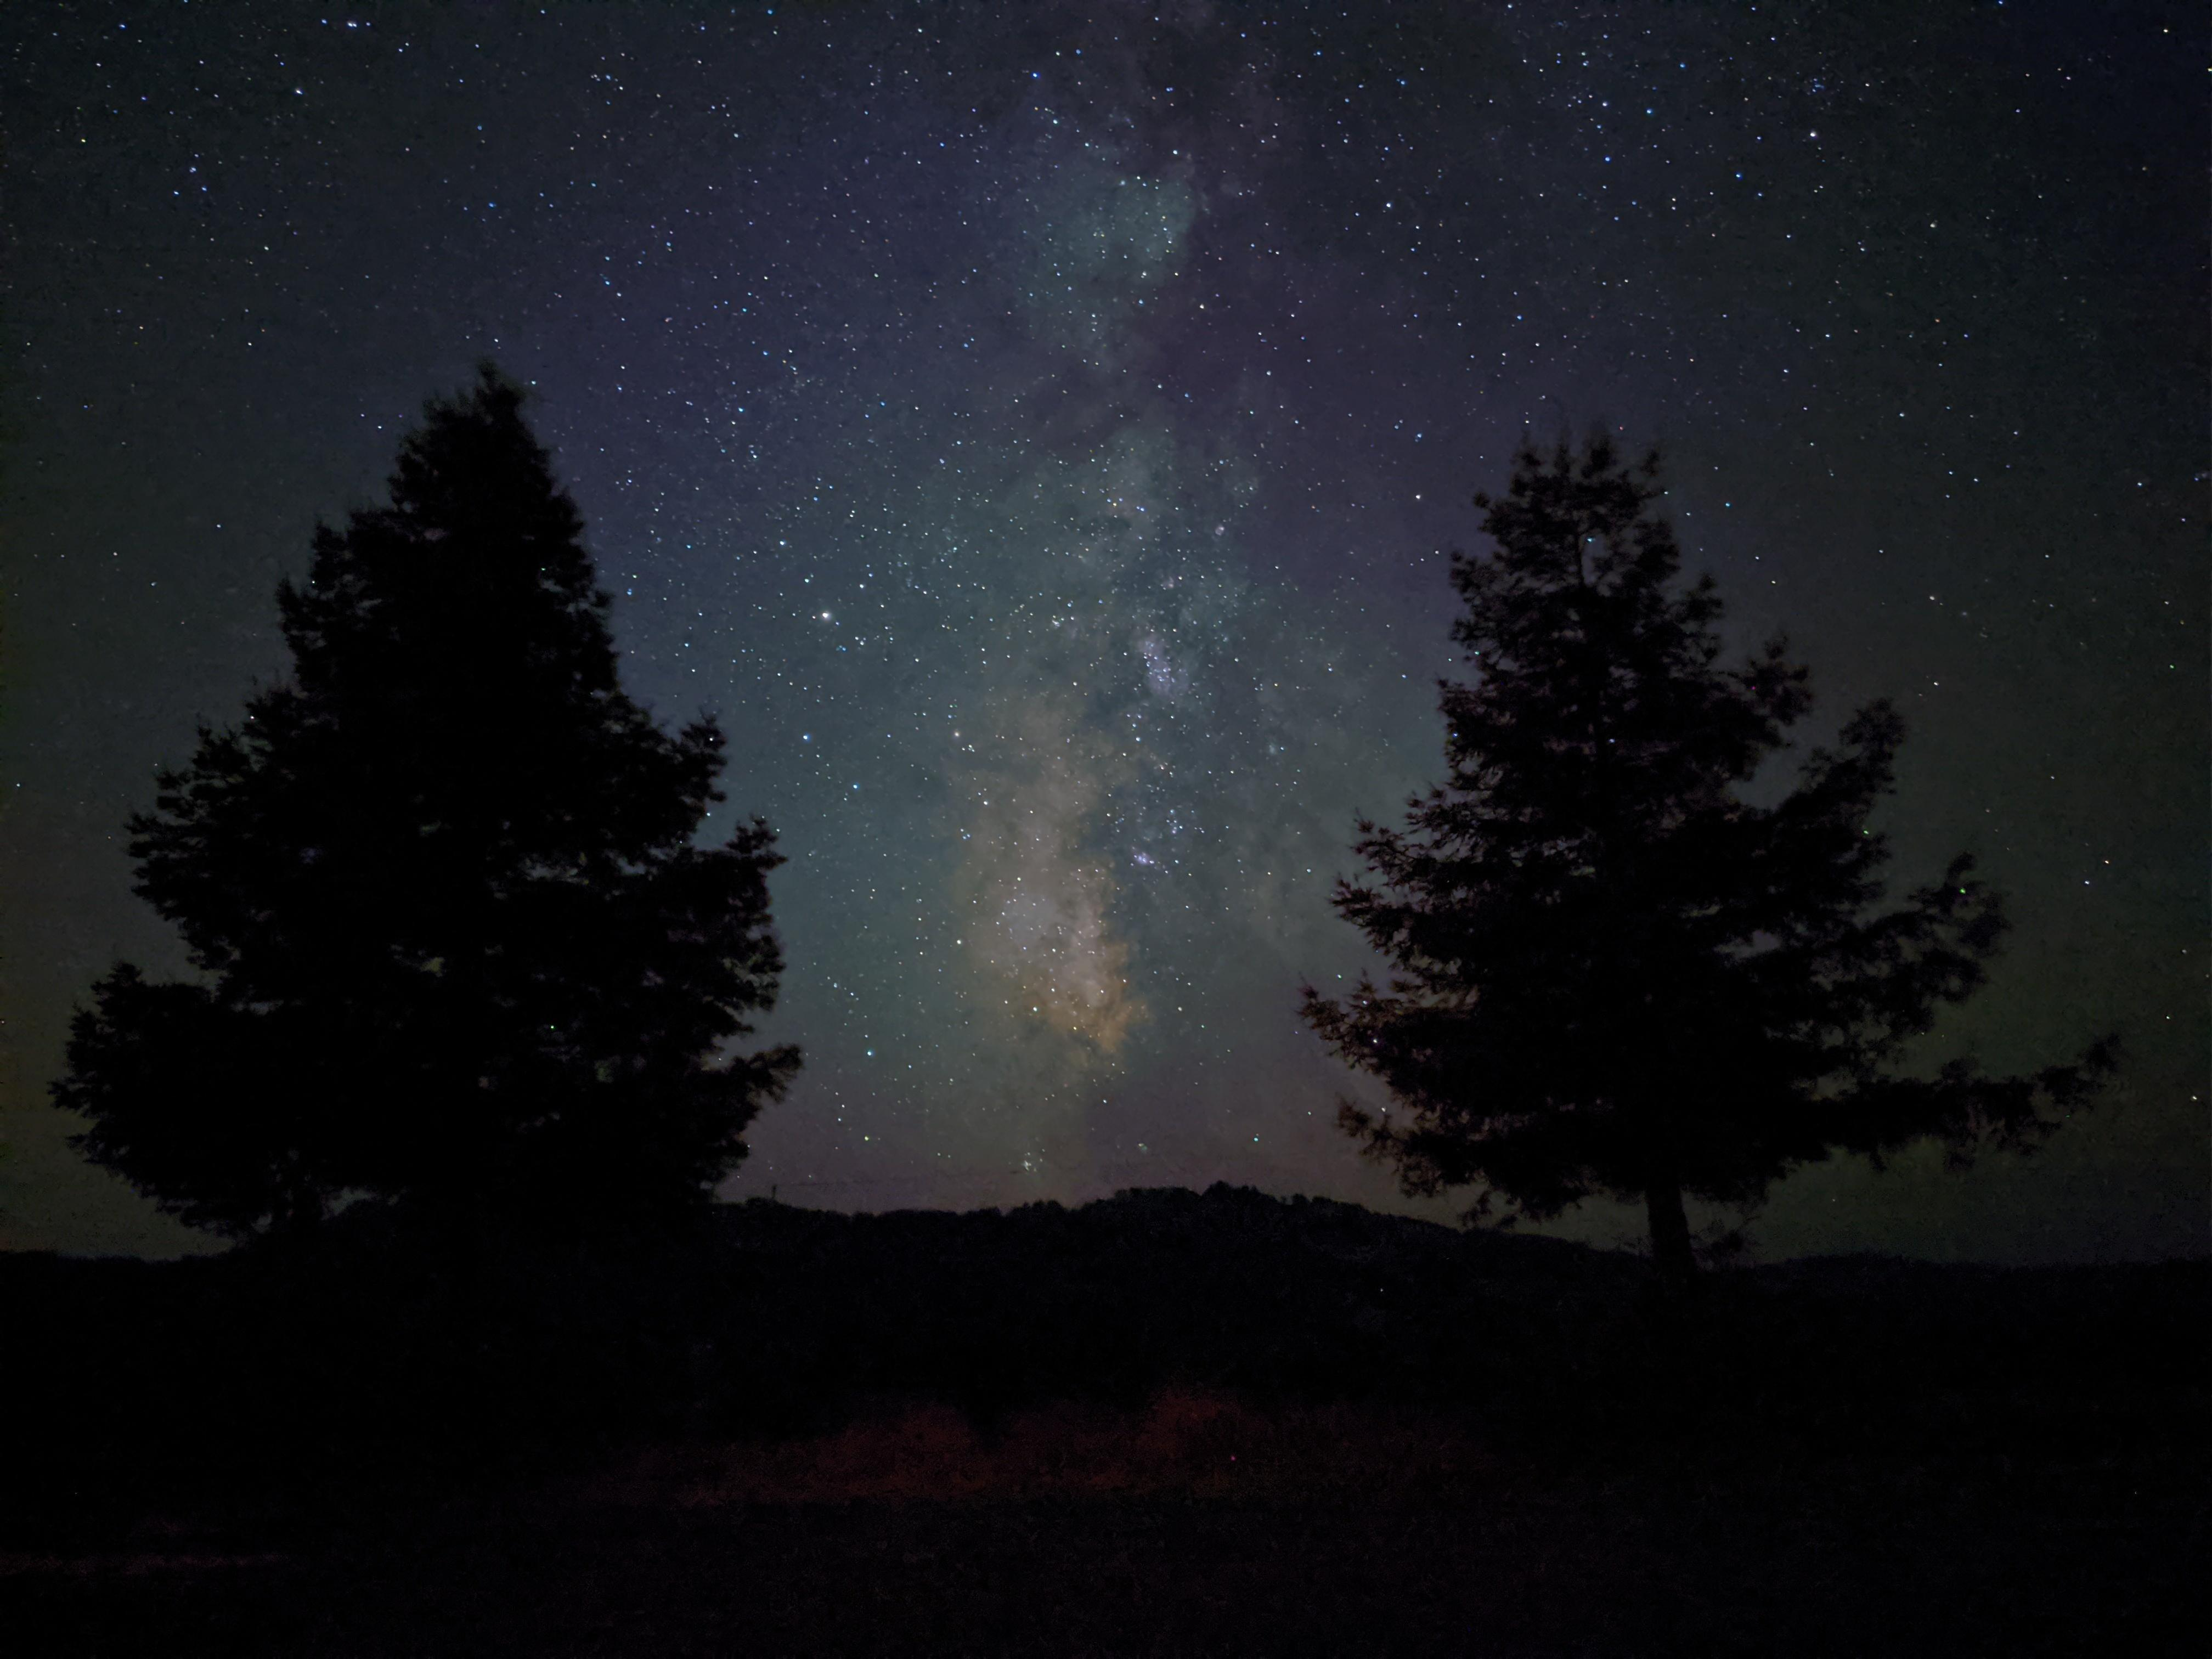 The Pixel 4's Night Sight mode can photograph the Milky Way and individual stars -- if the sky is clear enough.